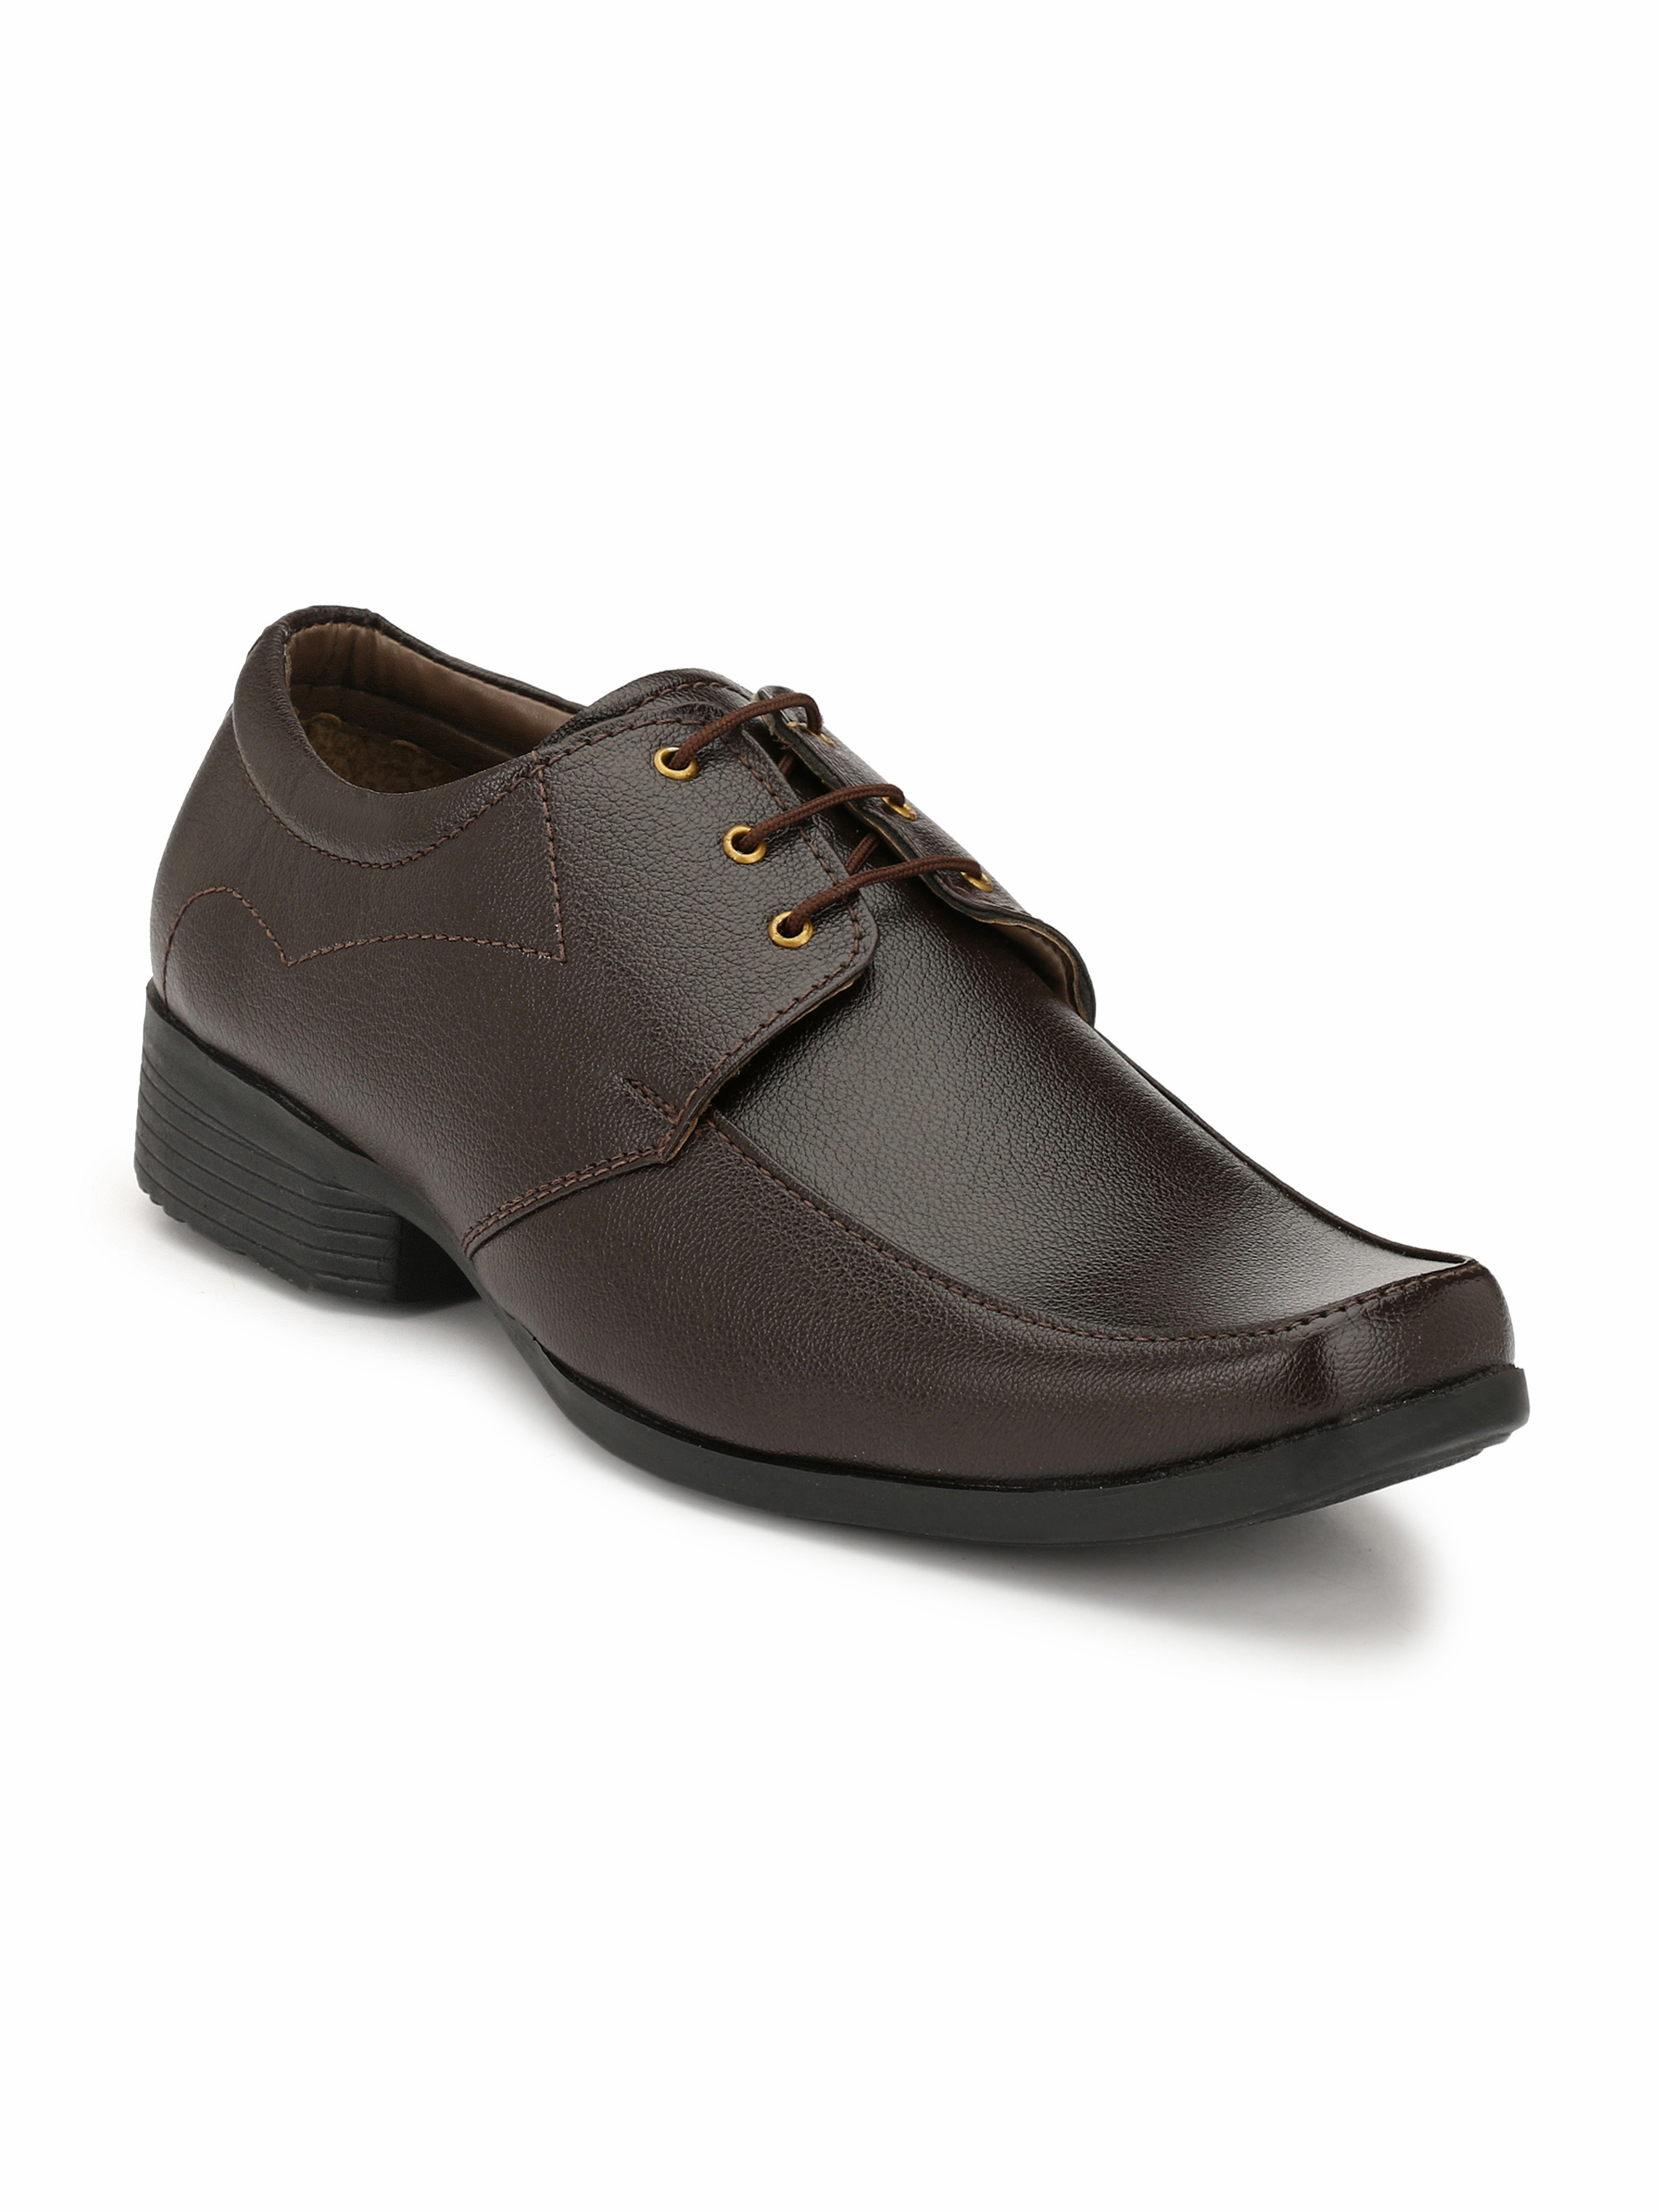 Guava | Guava Derby Formal Shoes - Brown